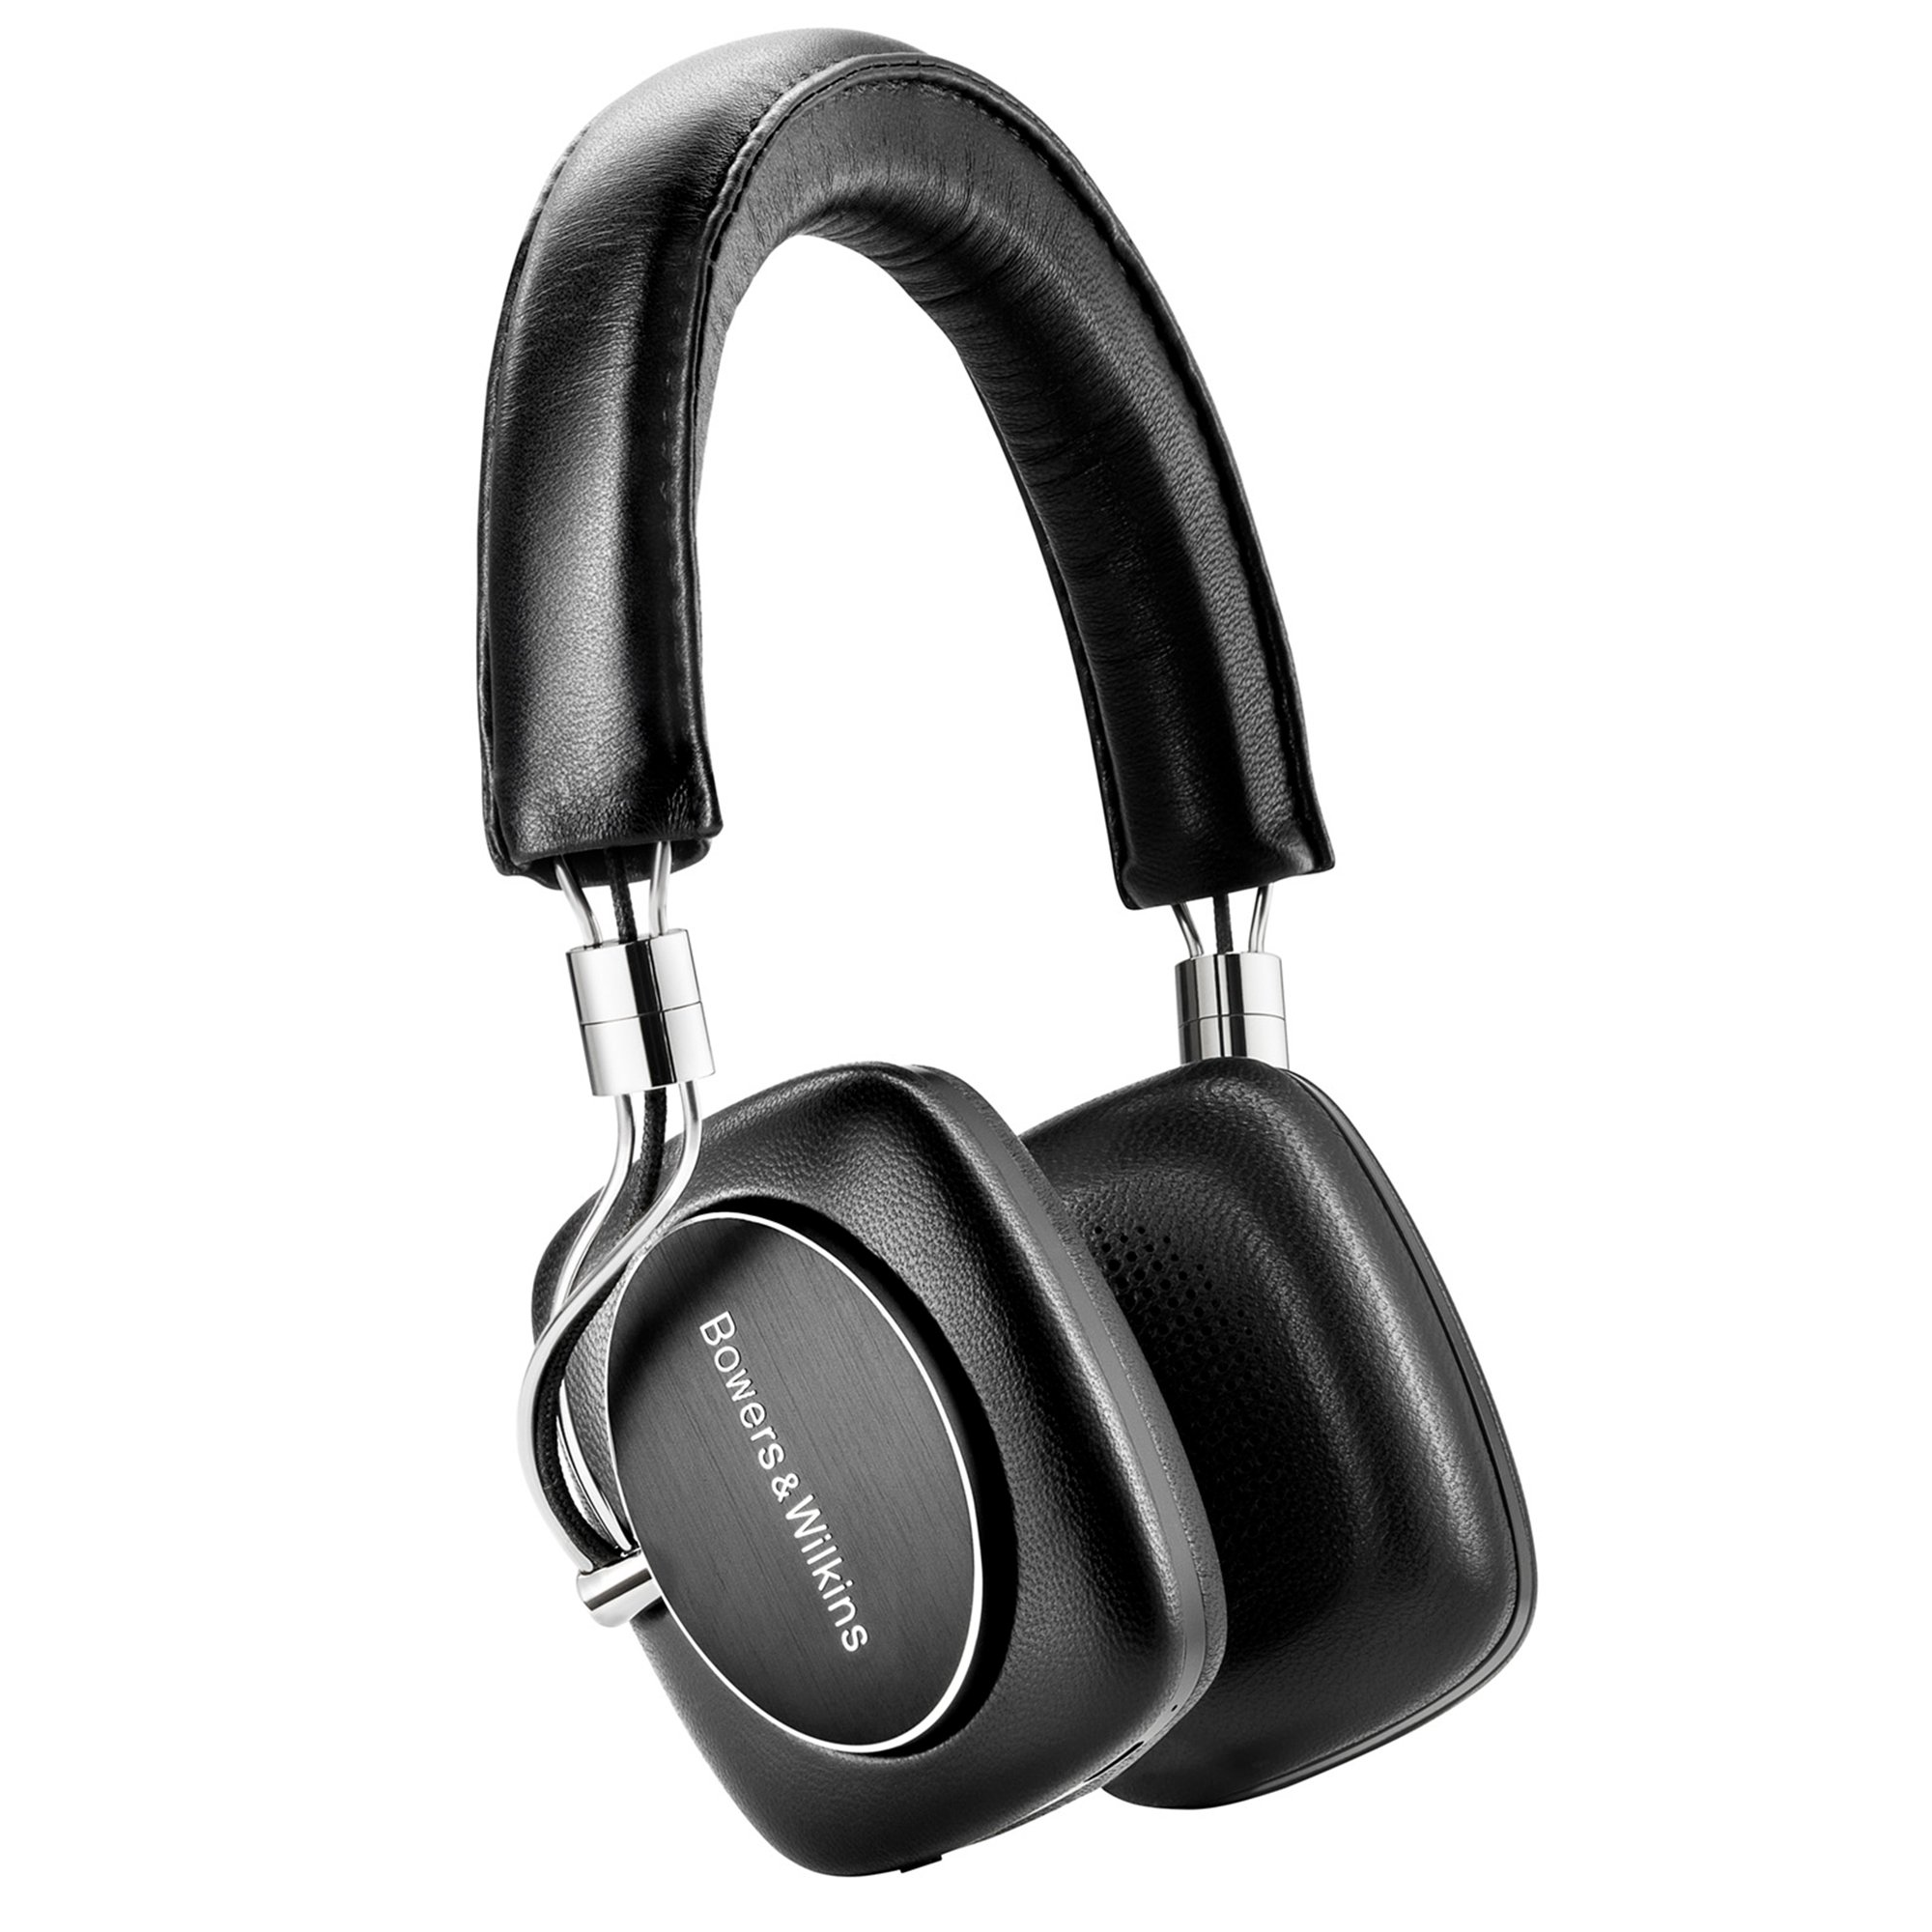 P5 Wireless Bluetooth Headphones by Bowers & Wilkins, Portable HiFi, Black by Bowers & Wilkins